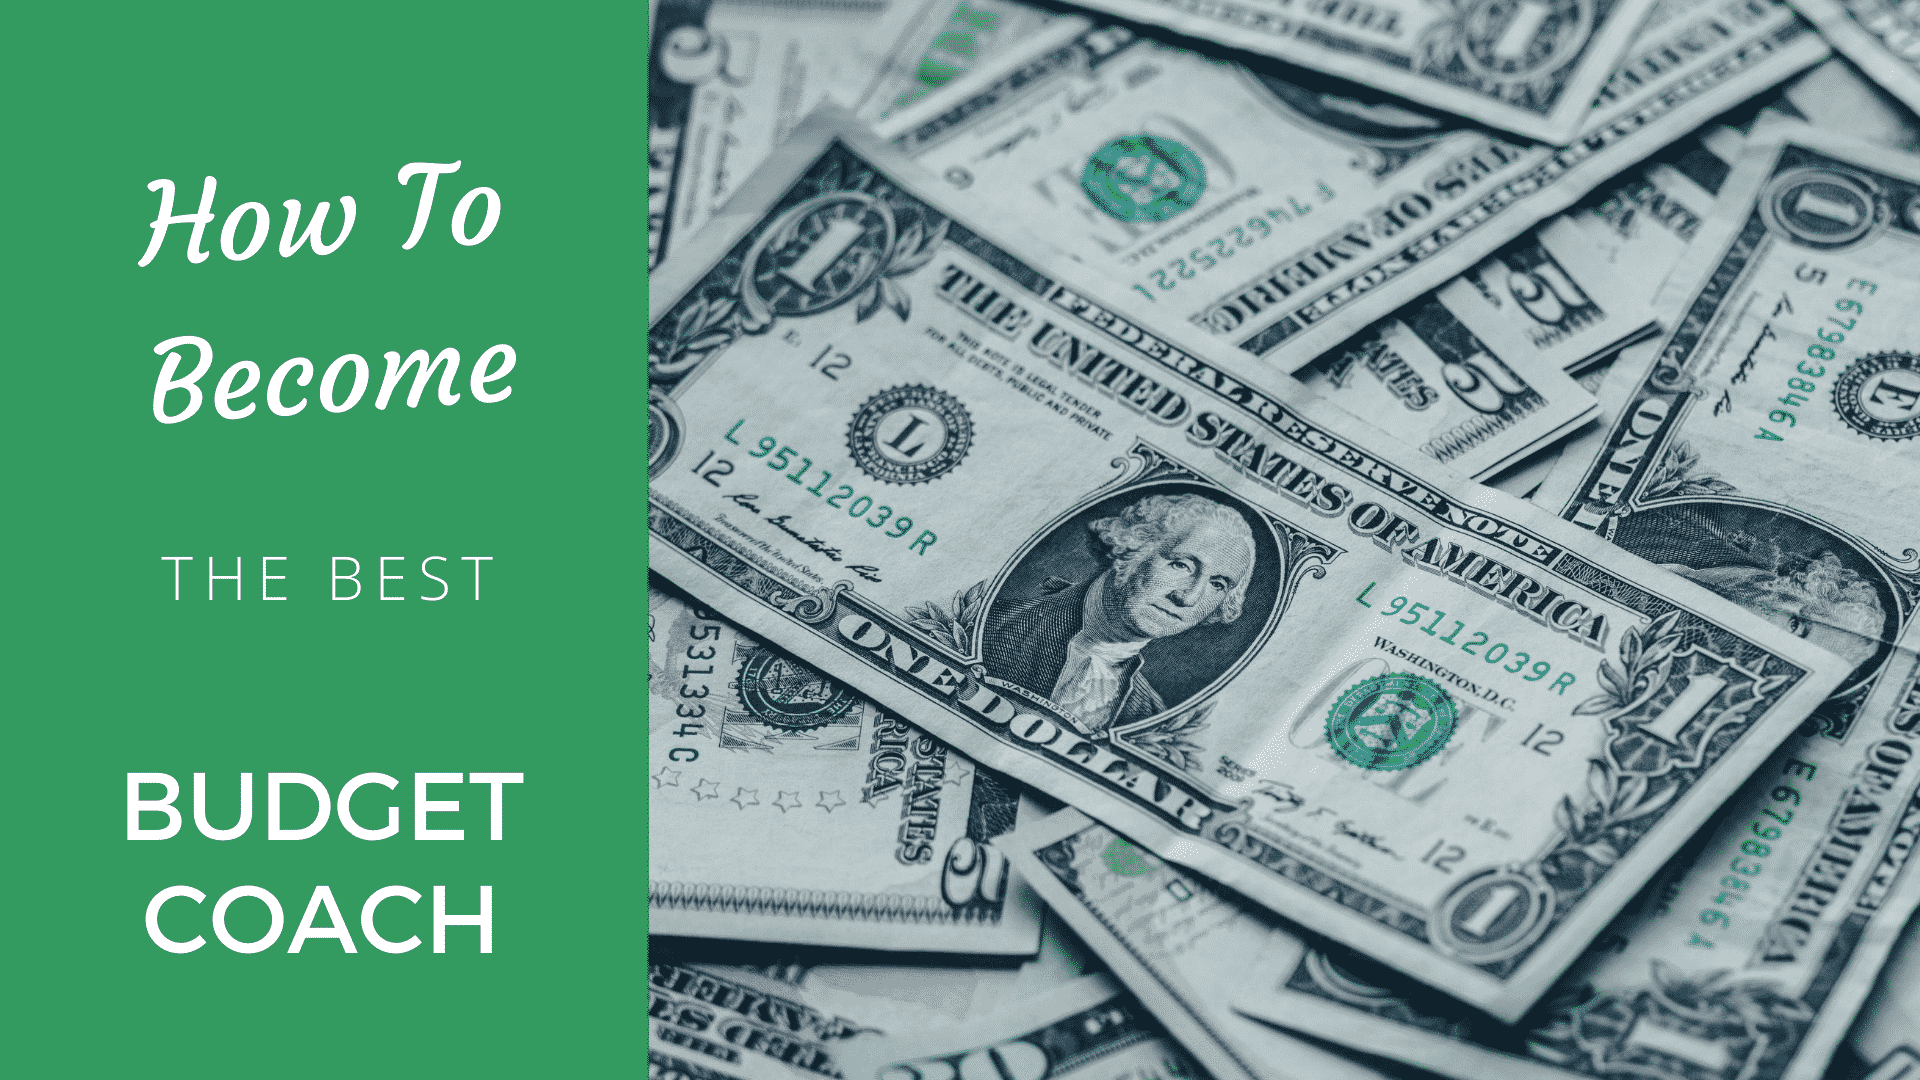 How to Become the Best Budget Coach in 2020? budget coach